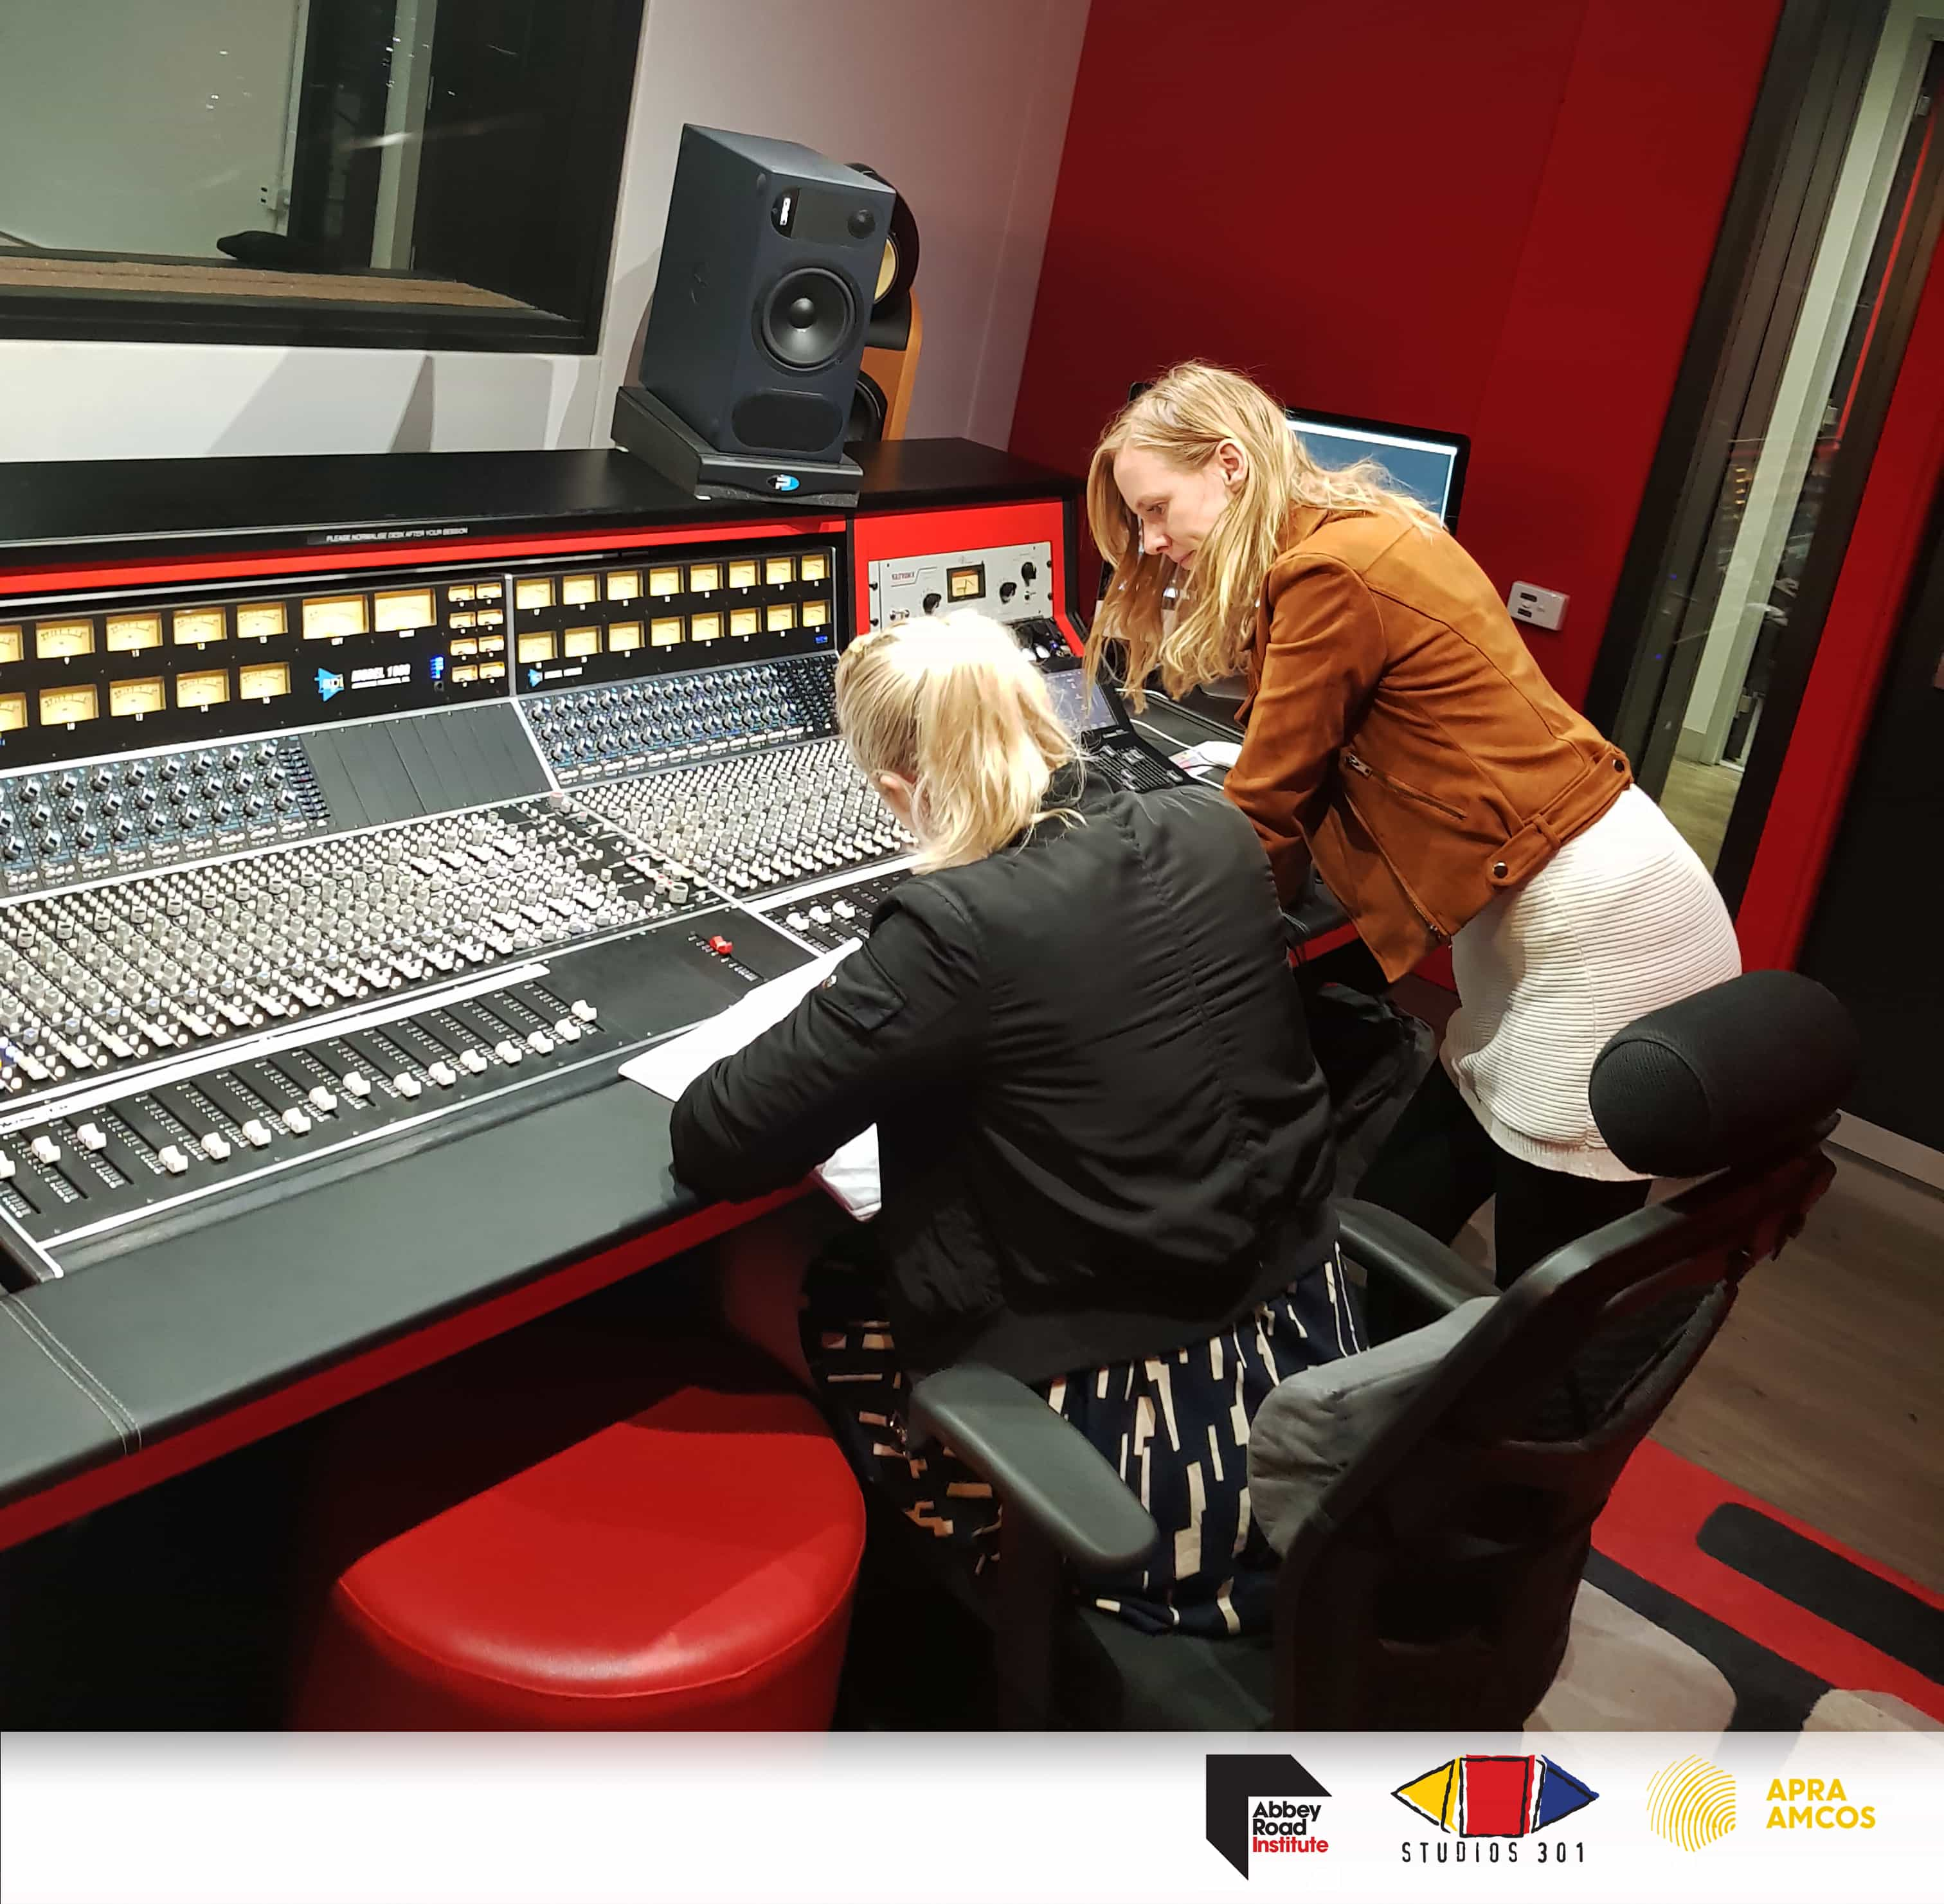 063b01f98 For more information regarding the Studios 301 Women in Music Scholarship  please contact Abbey Road Institute by calling 1800 274 338 or email us at  ...